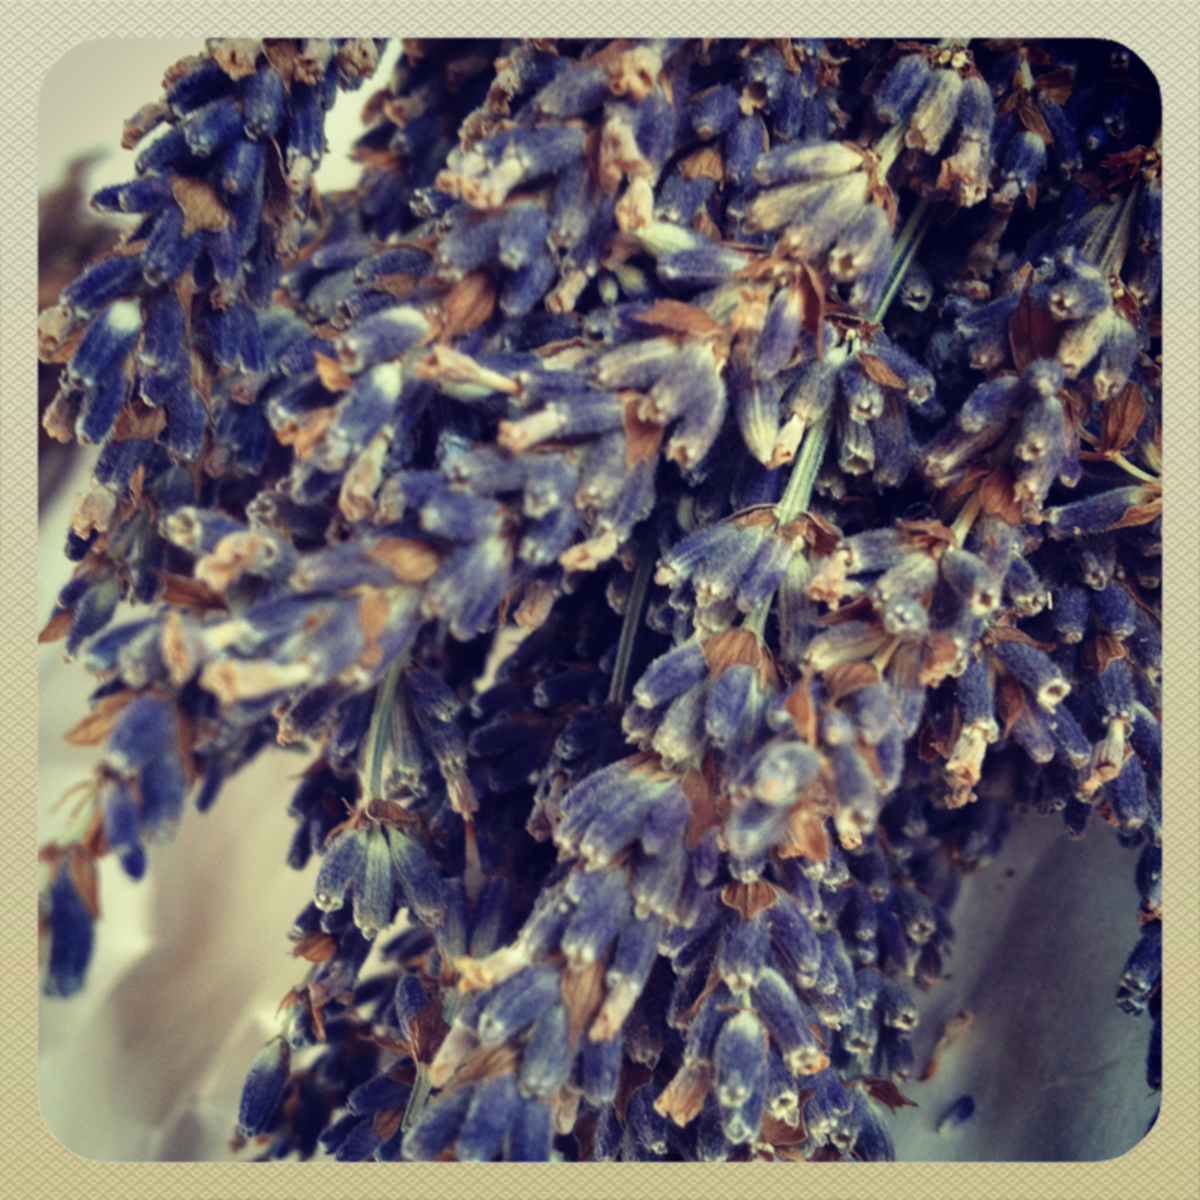 French lavender flowers close up